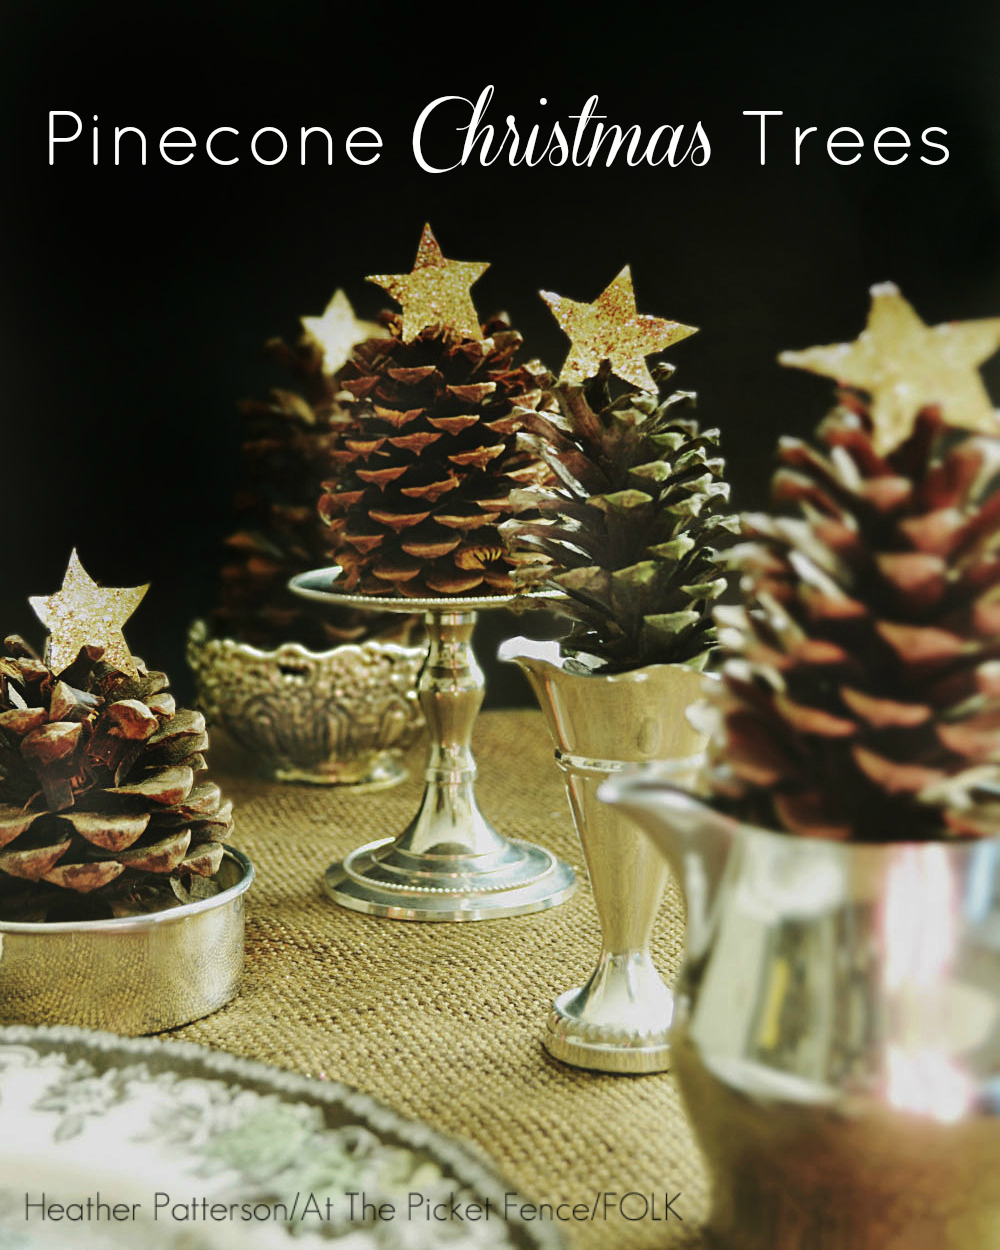 Pine cone Christmas Trees..simplicity at its best!